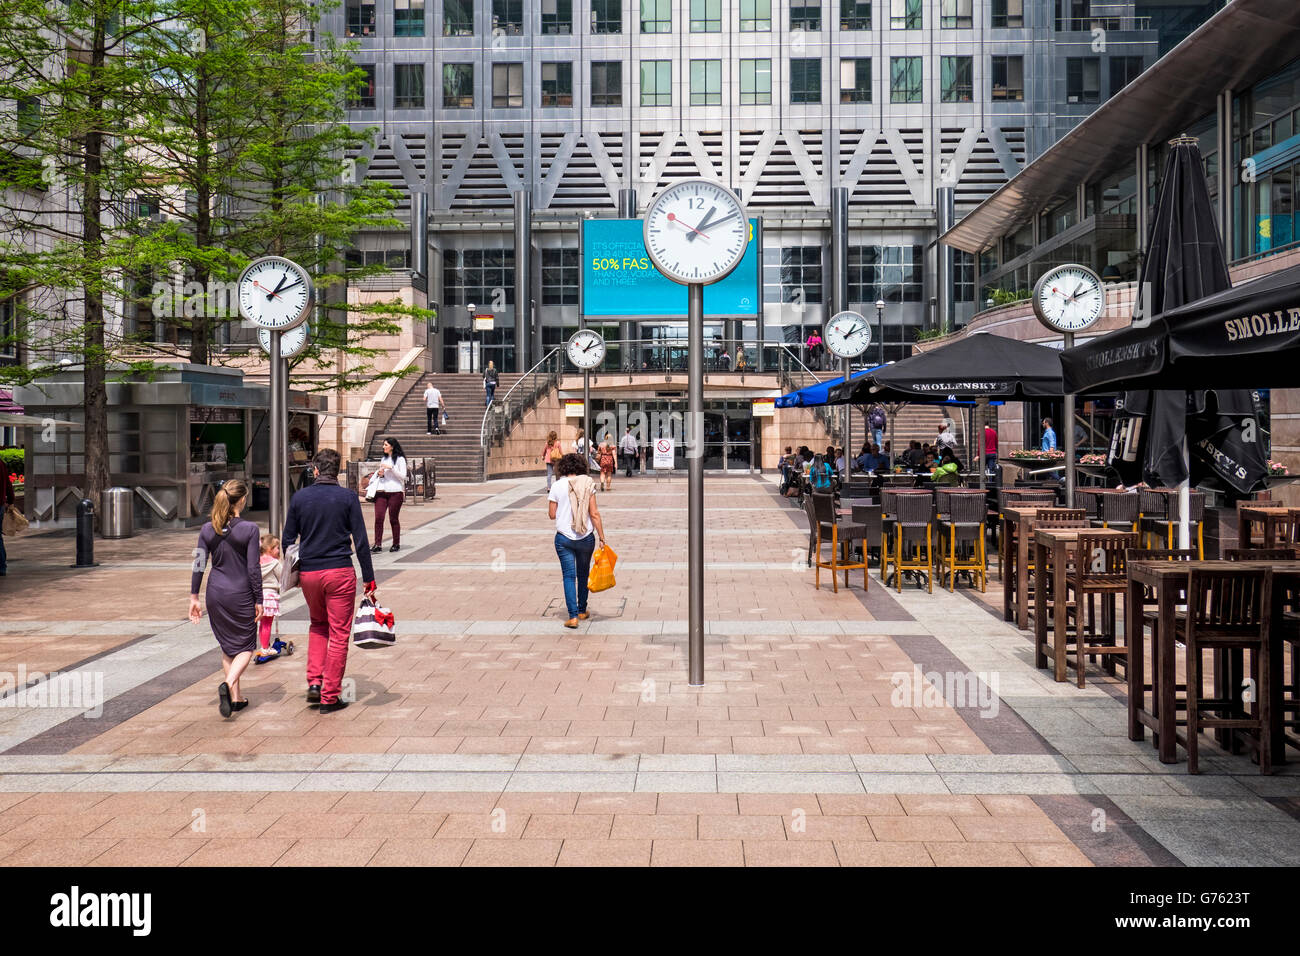 Six Public Clocks located at One Canada Square in Canary Wharf - public art sculpture by Konstantin Grcic - Stock Image